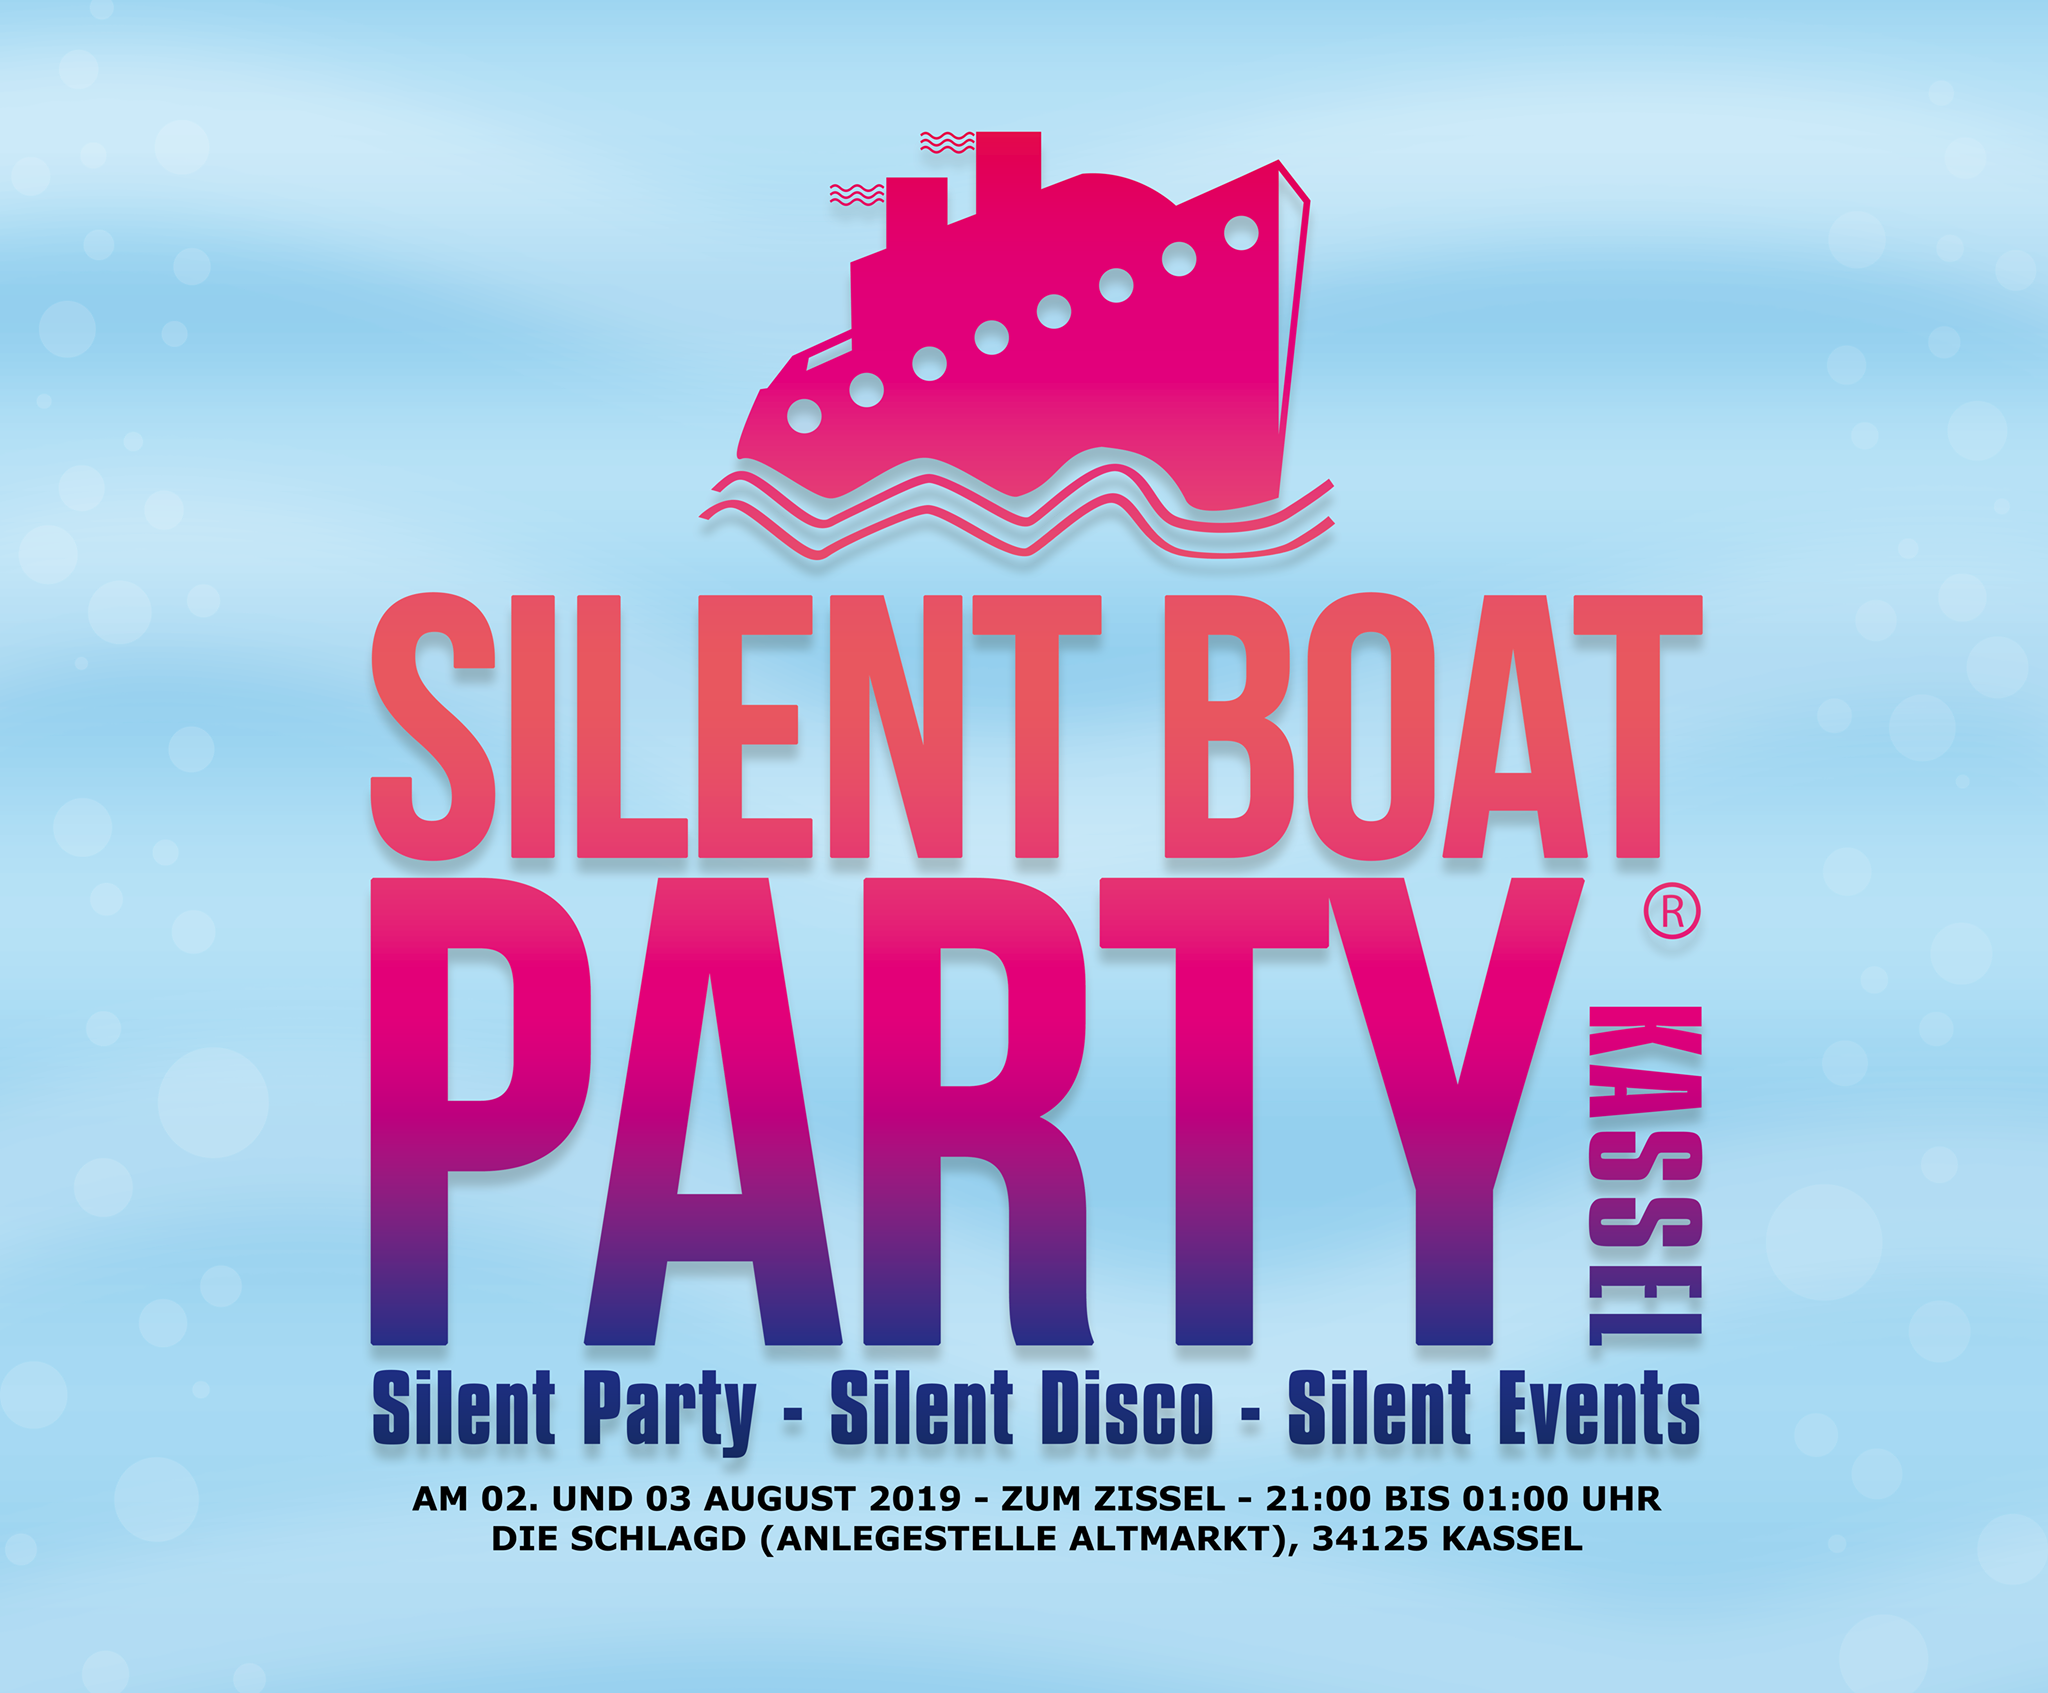 Silent Boat Party